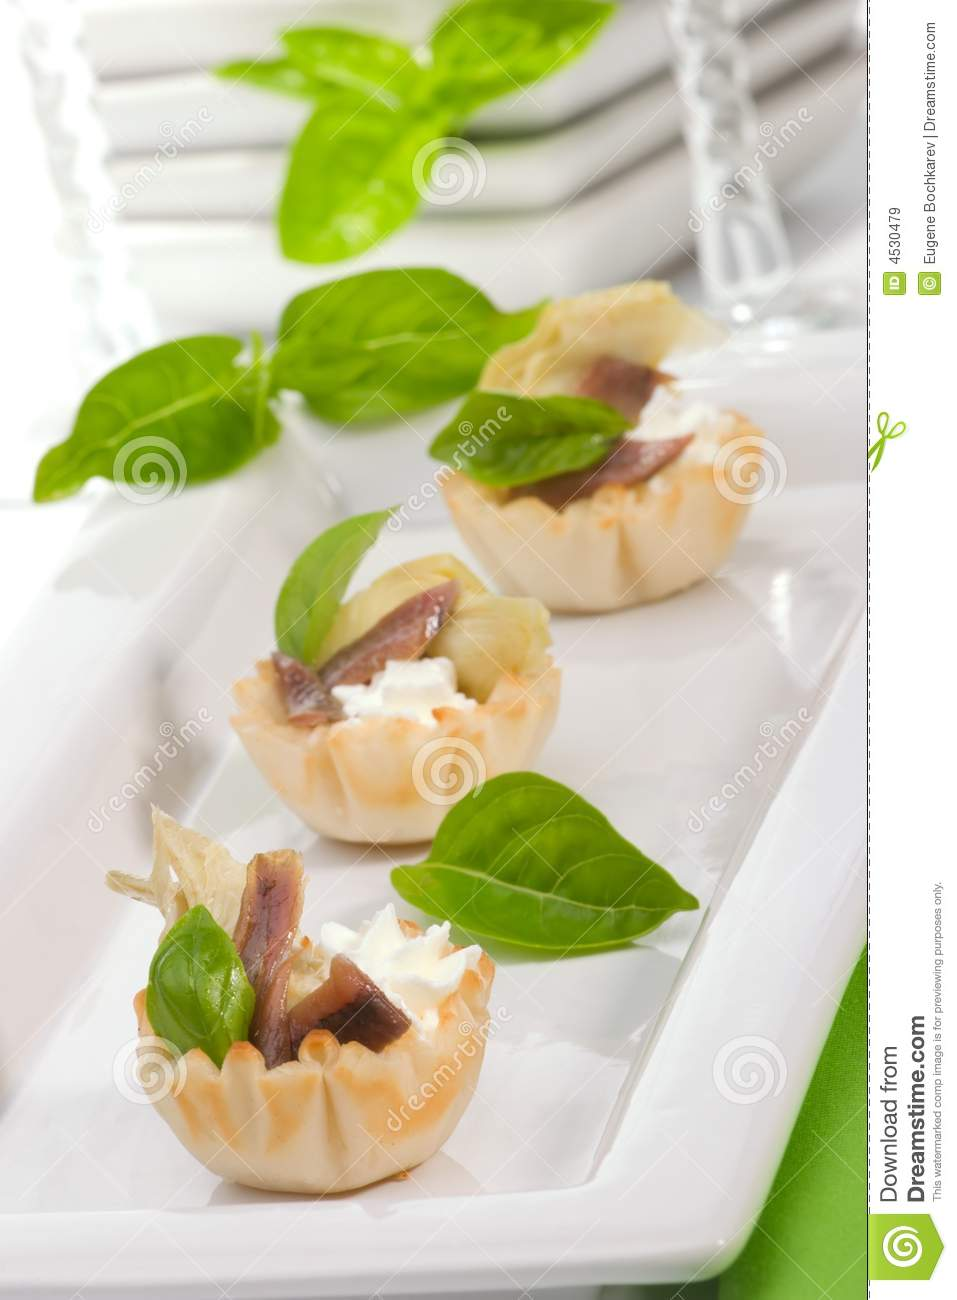 Artichoke anchovy and cream cheese canapes stock image for Cream cheese canape